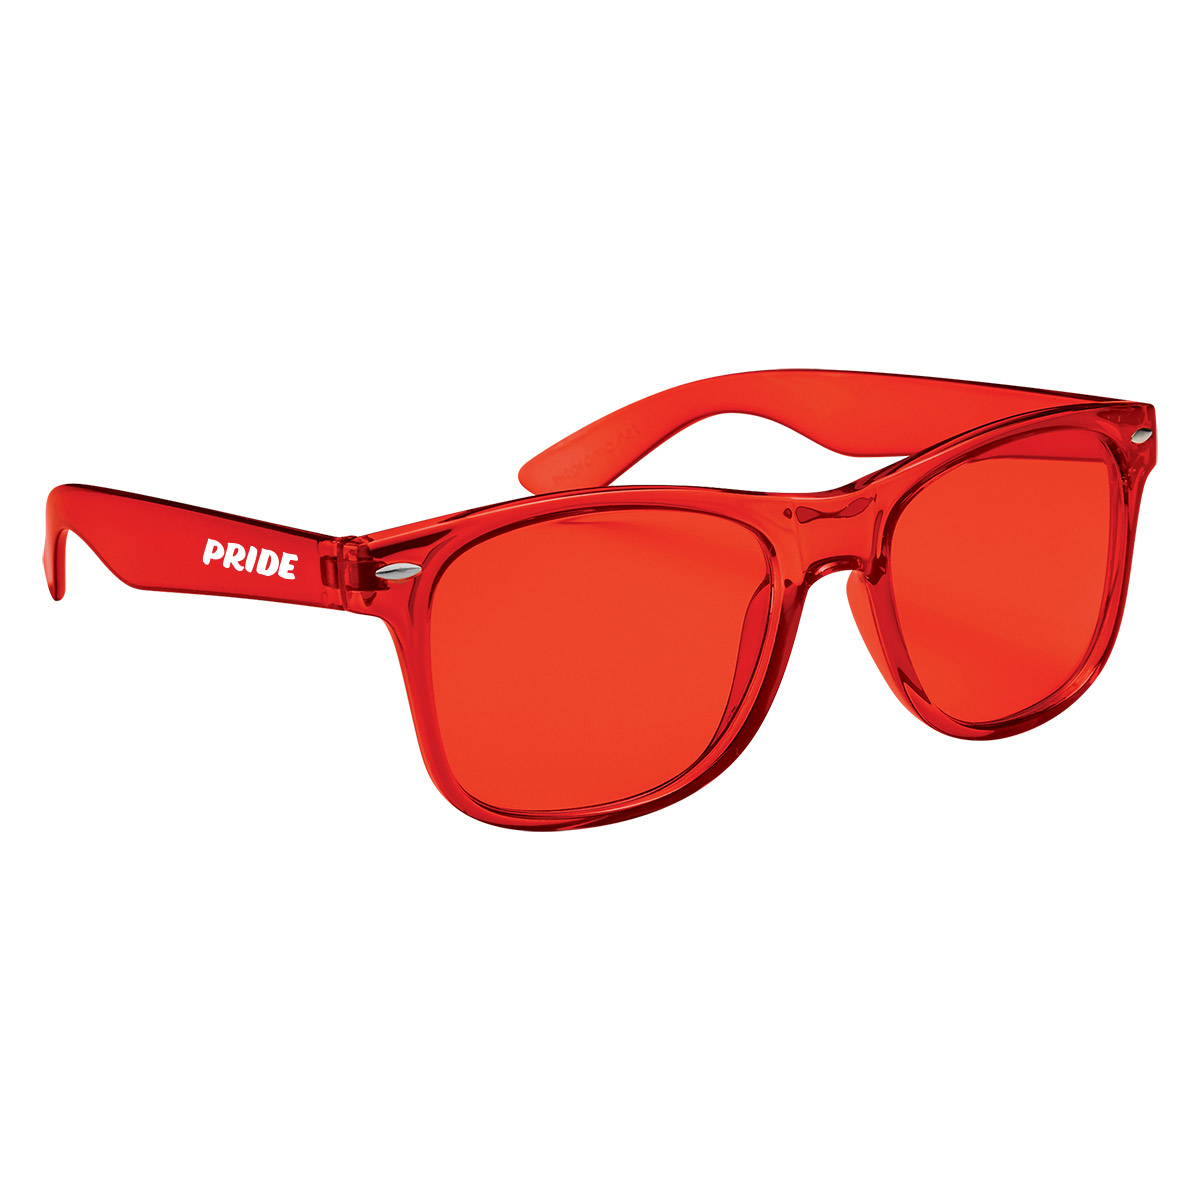 315513 maui translucent sunglasses one color imprint on arm white only